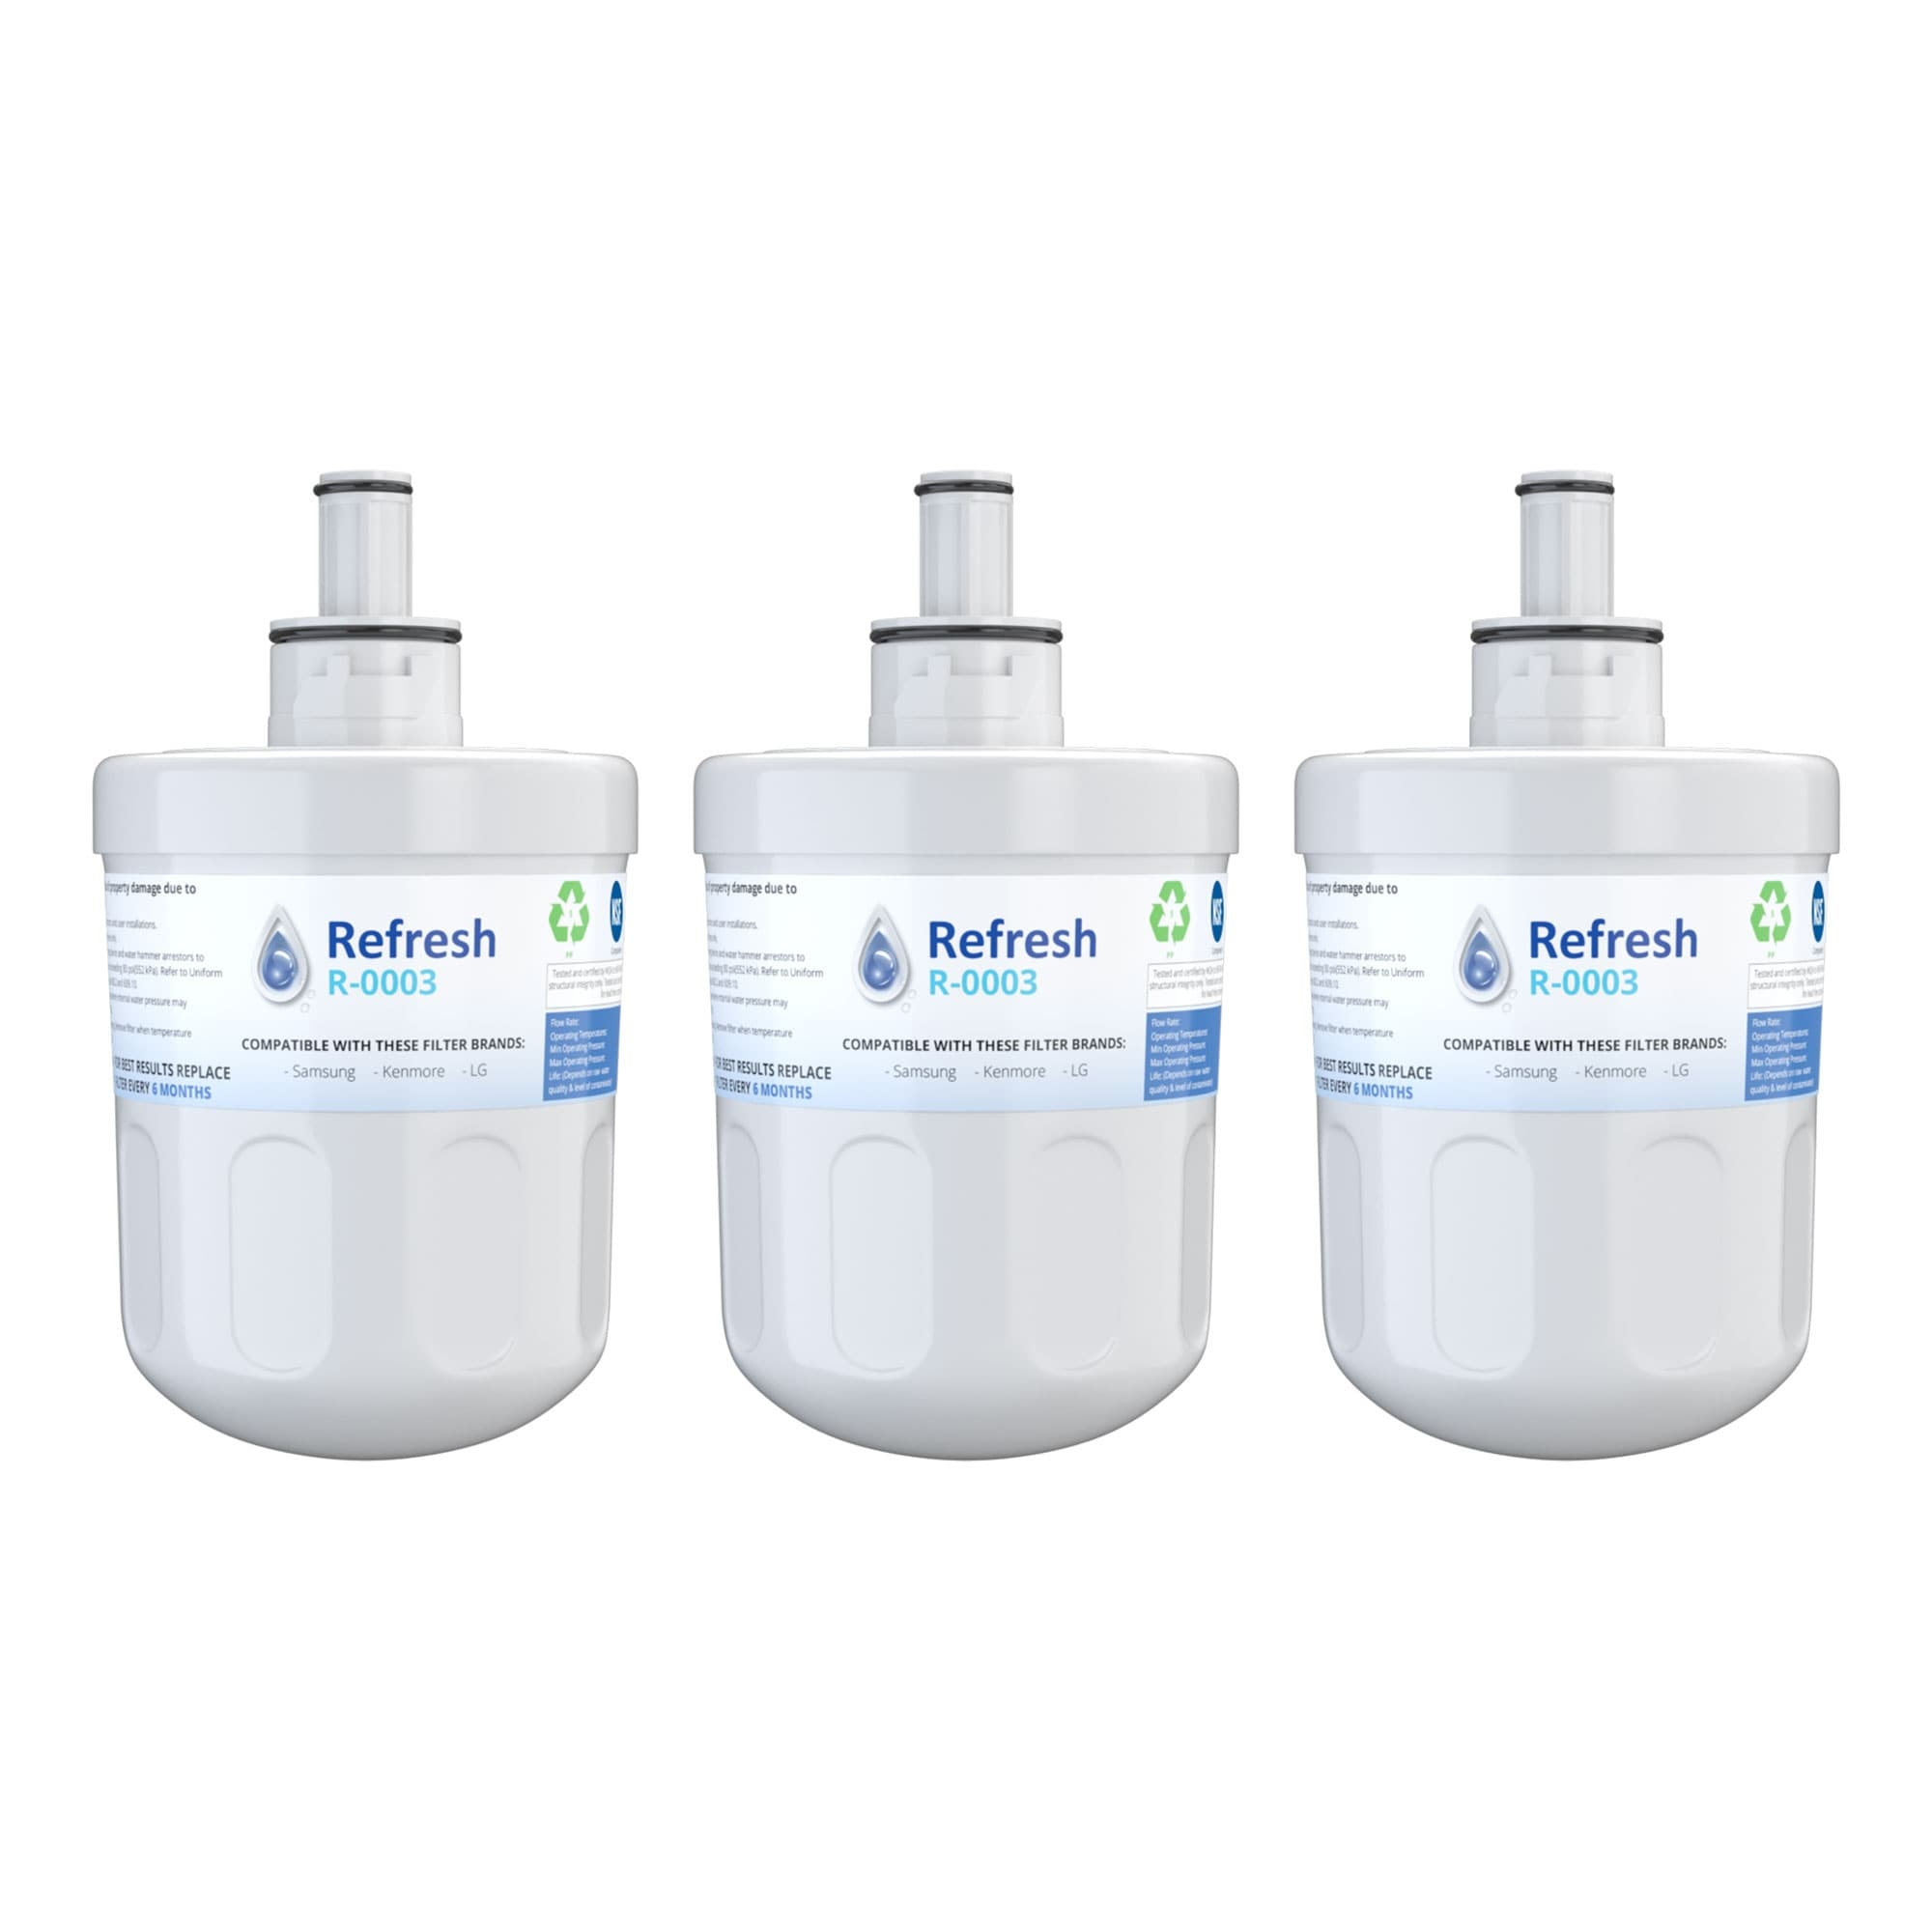 6 Pack Replacement Water Filter for Samsung PH21300 Refrigerators